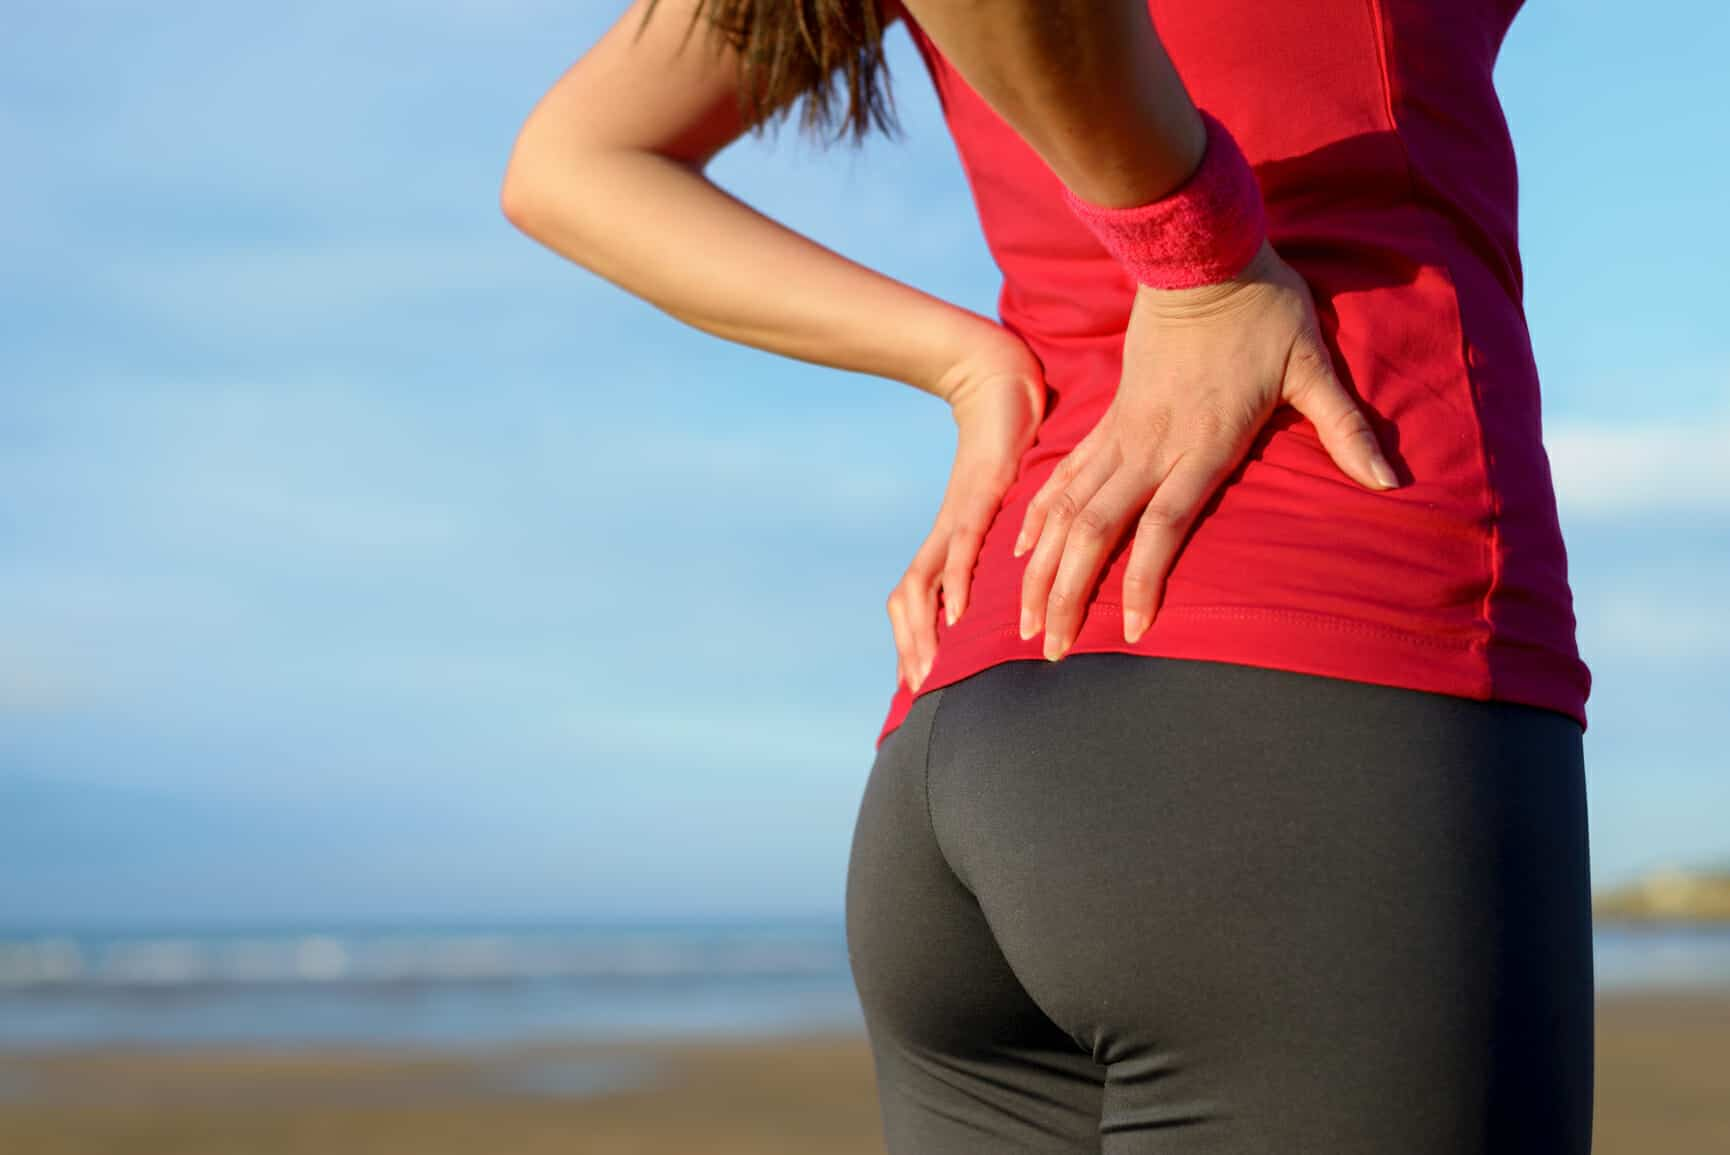 Girl with a lower back pain